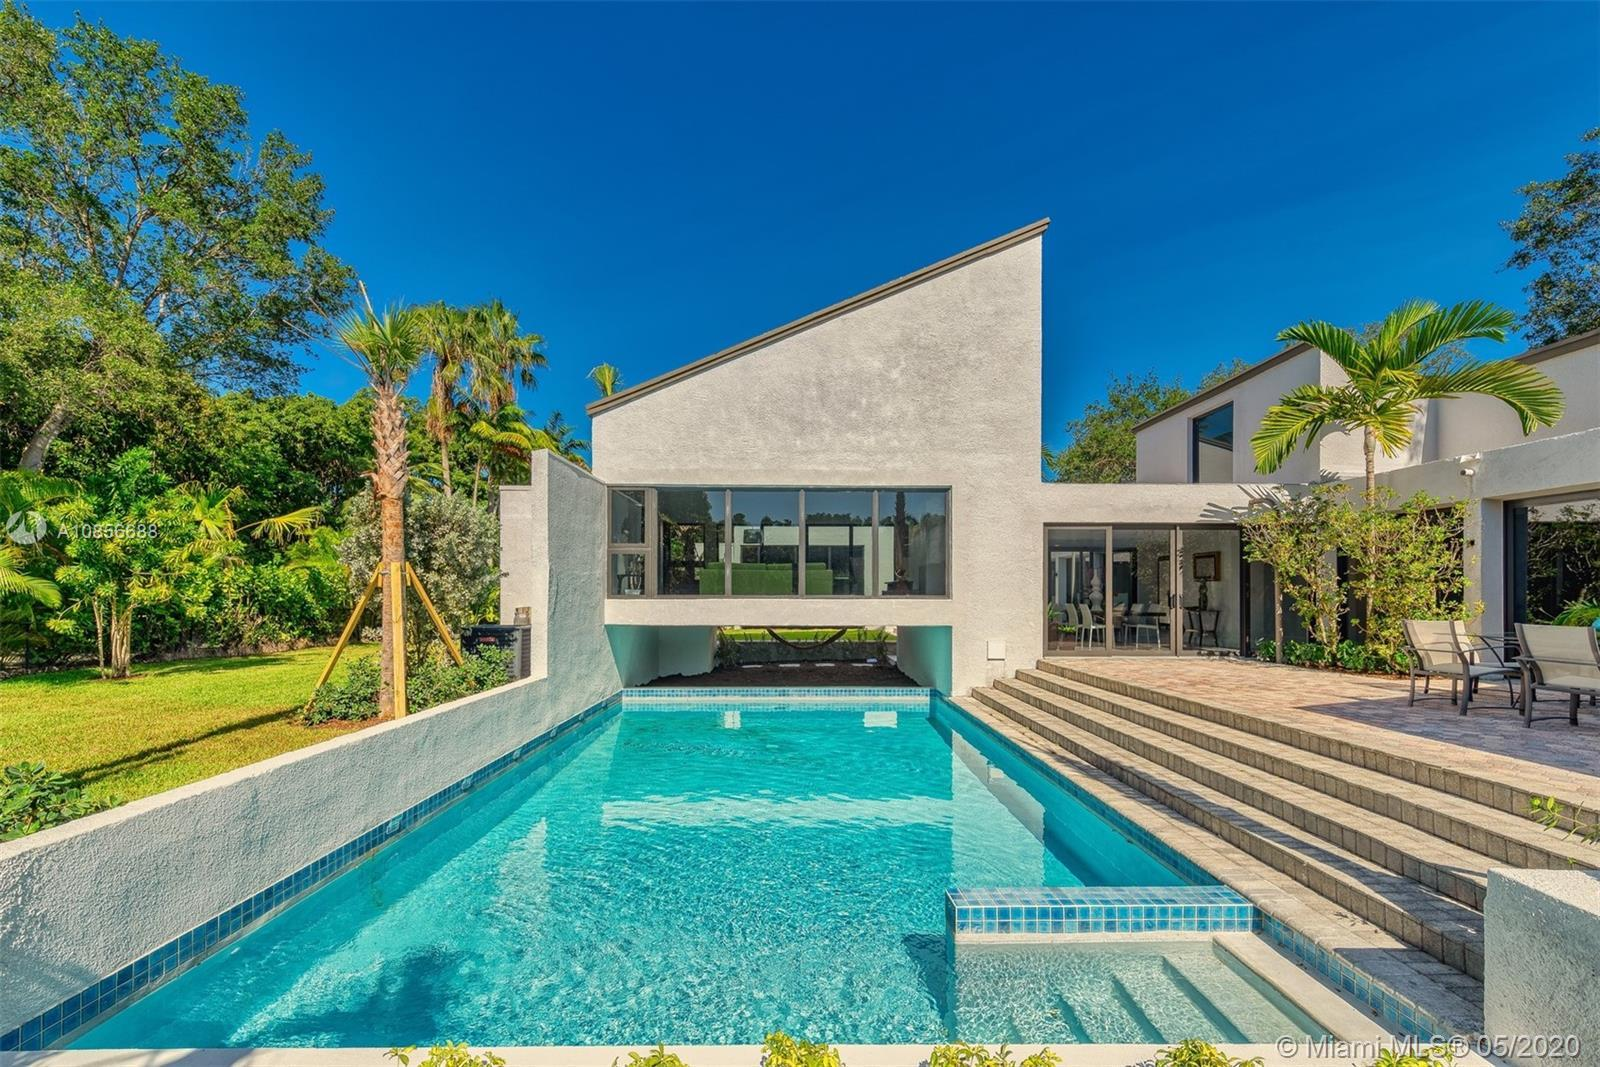 Your own slice of Miami Paradise in one of the city's safest neighborhoods. This recently redesigned